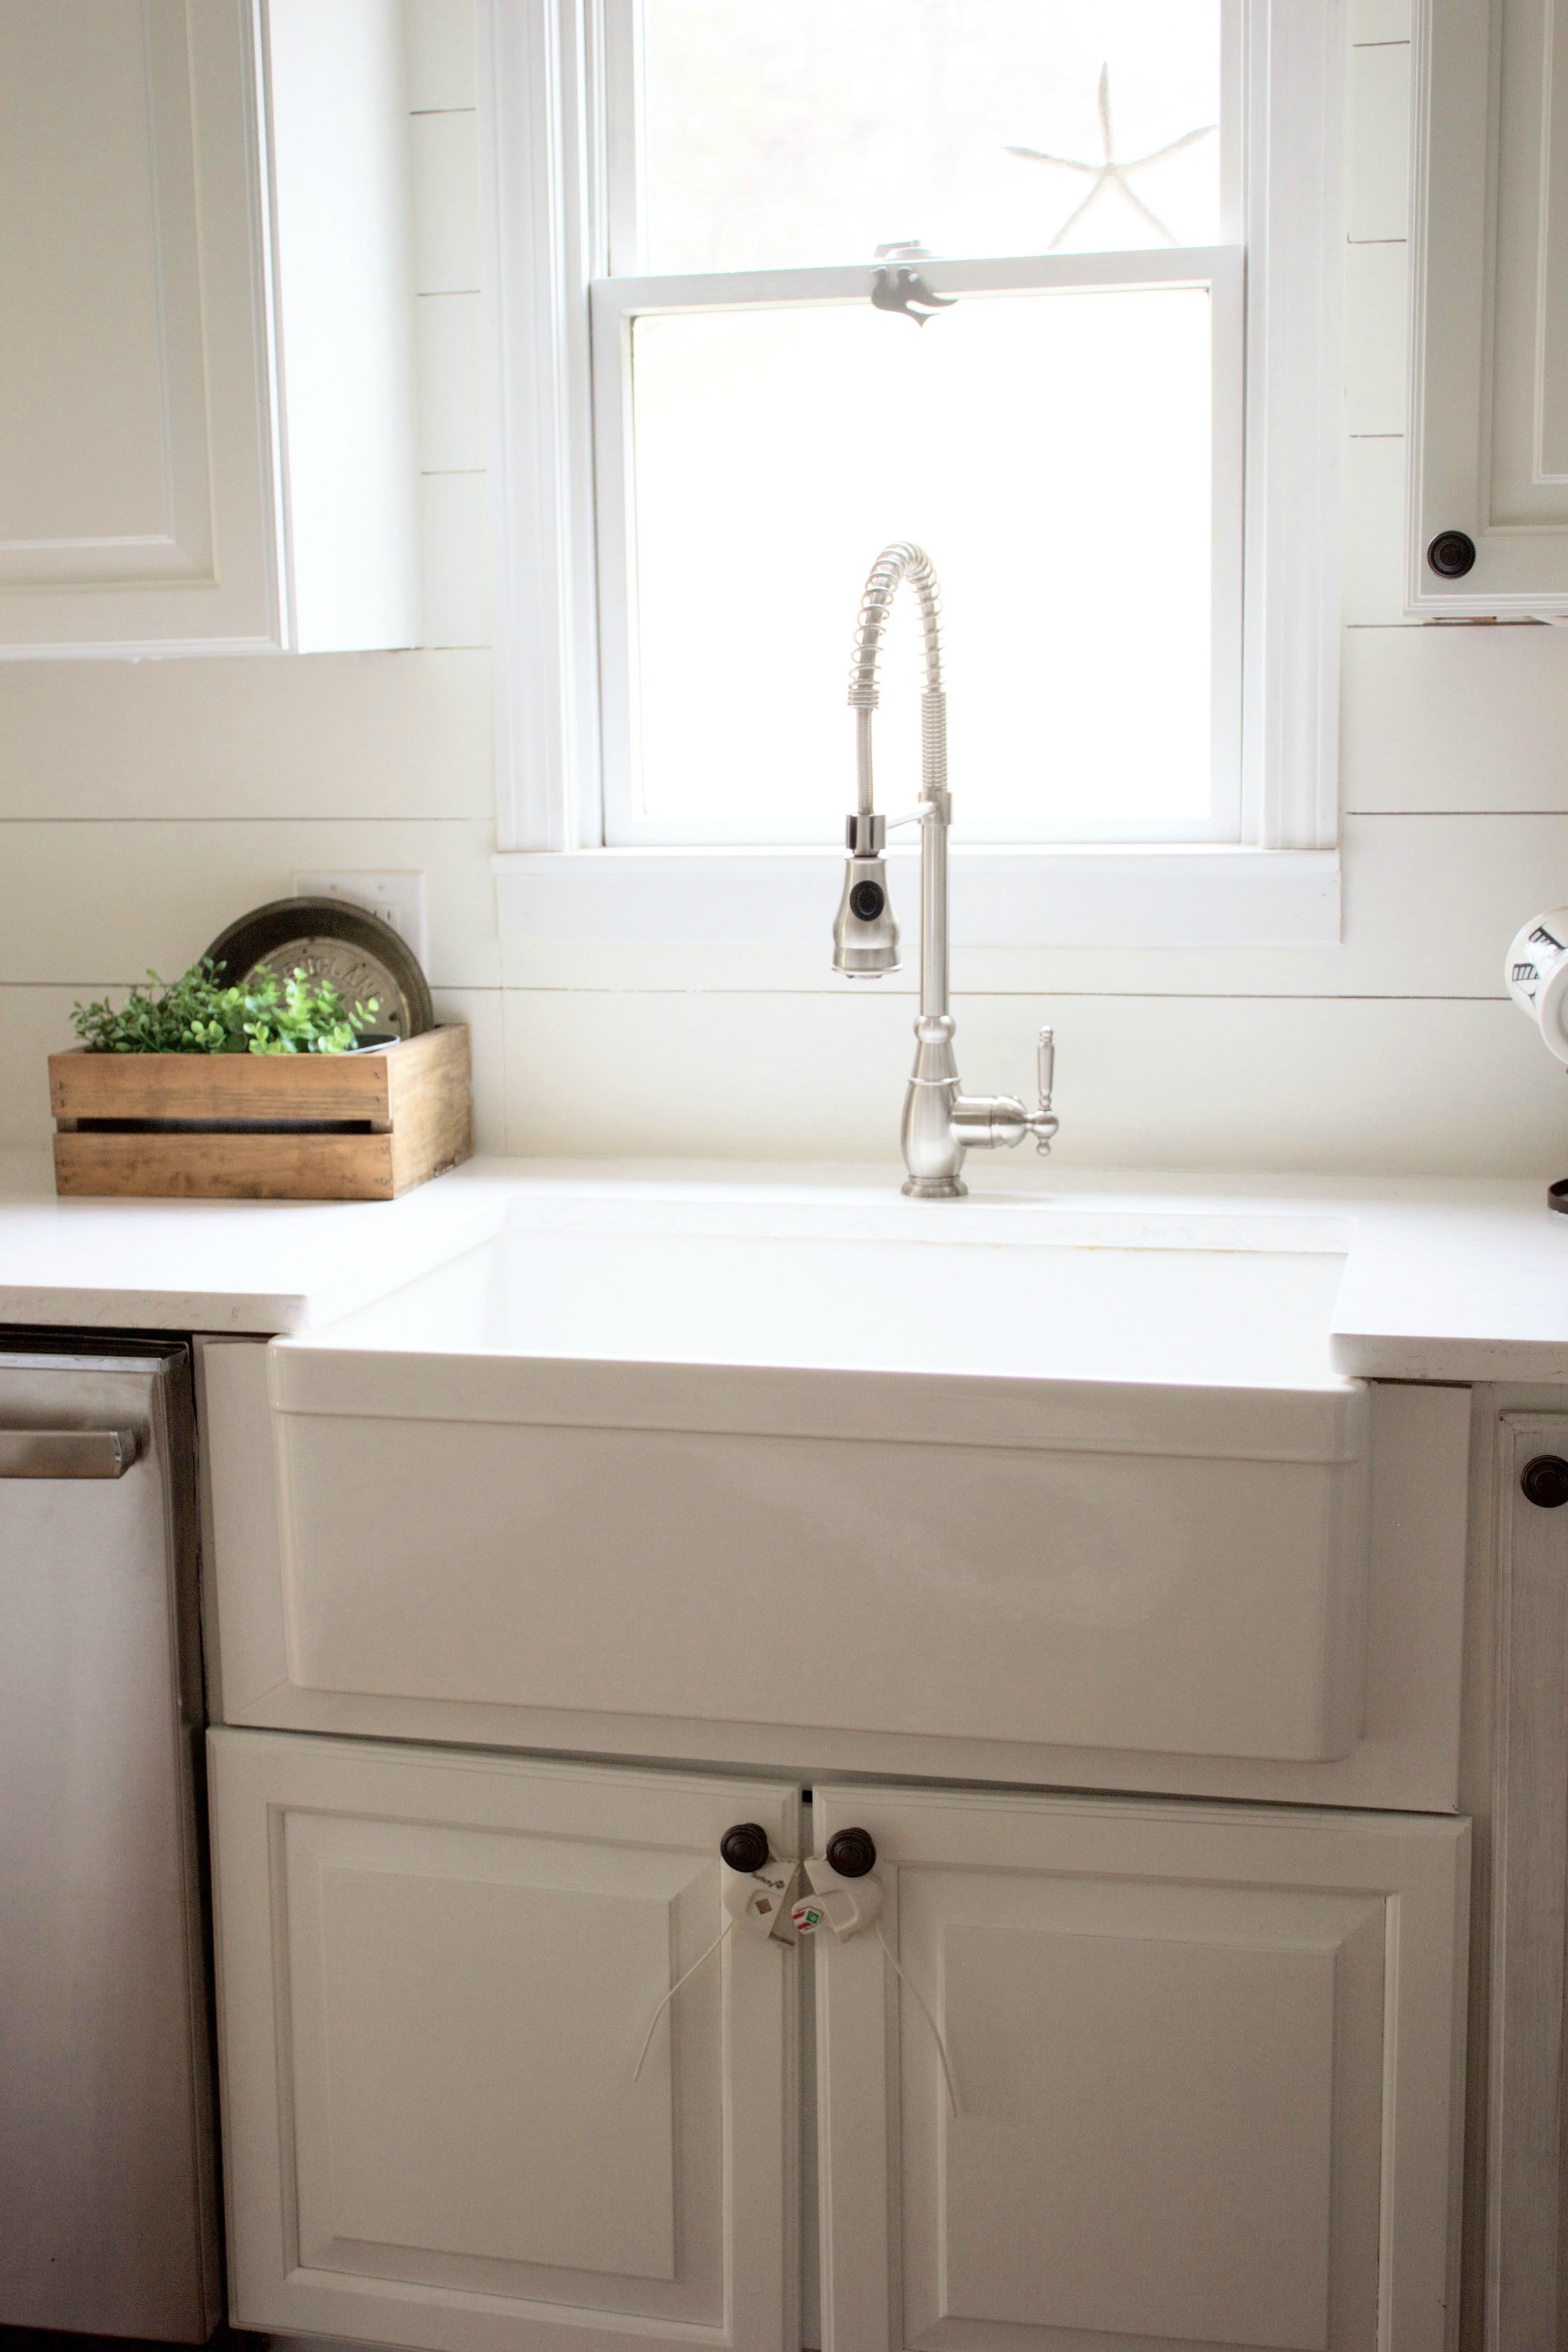 Best Time To Buy Kitchen Sinks